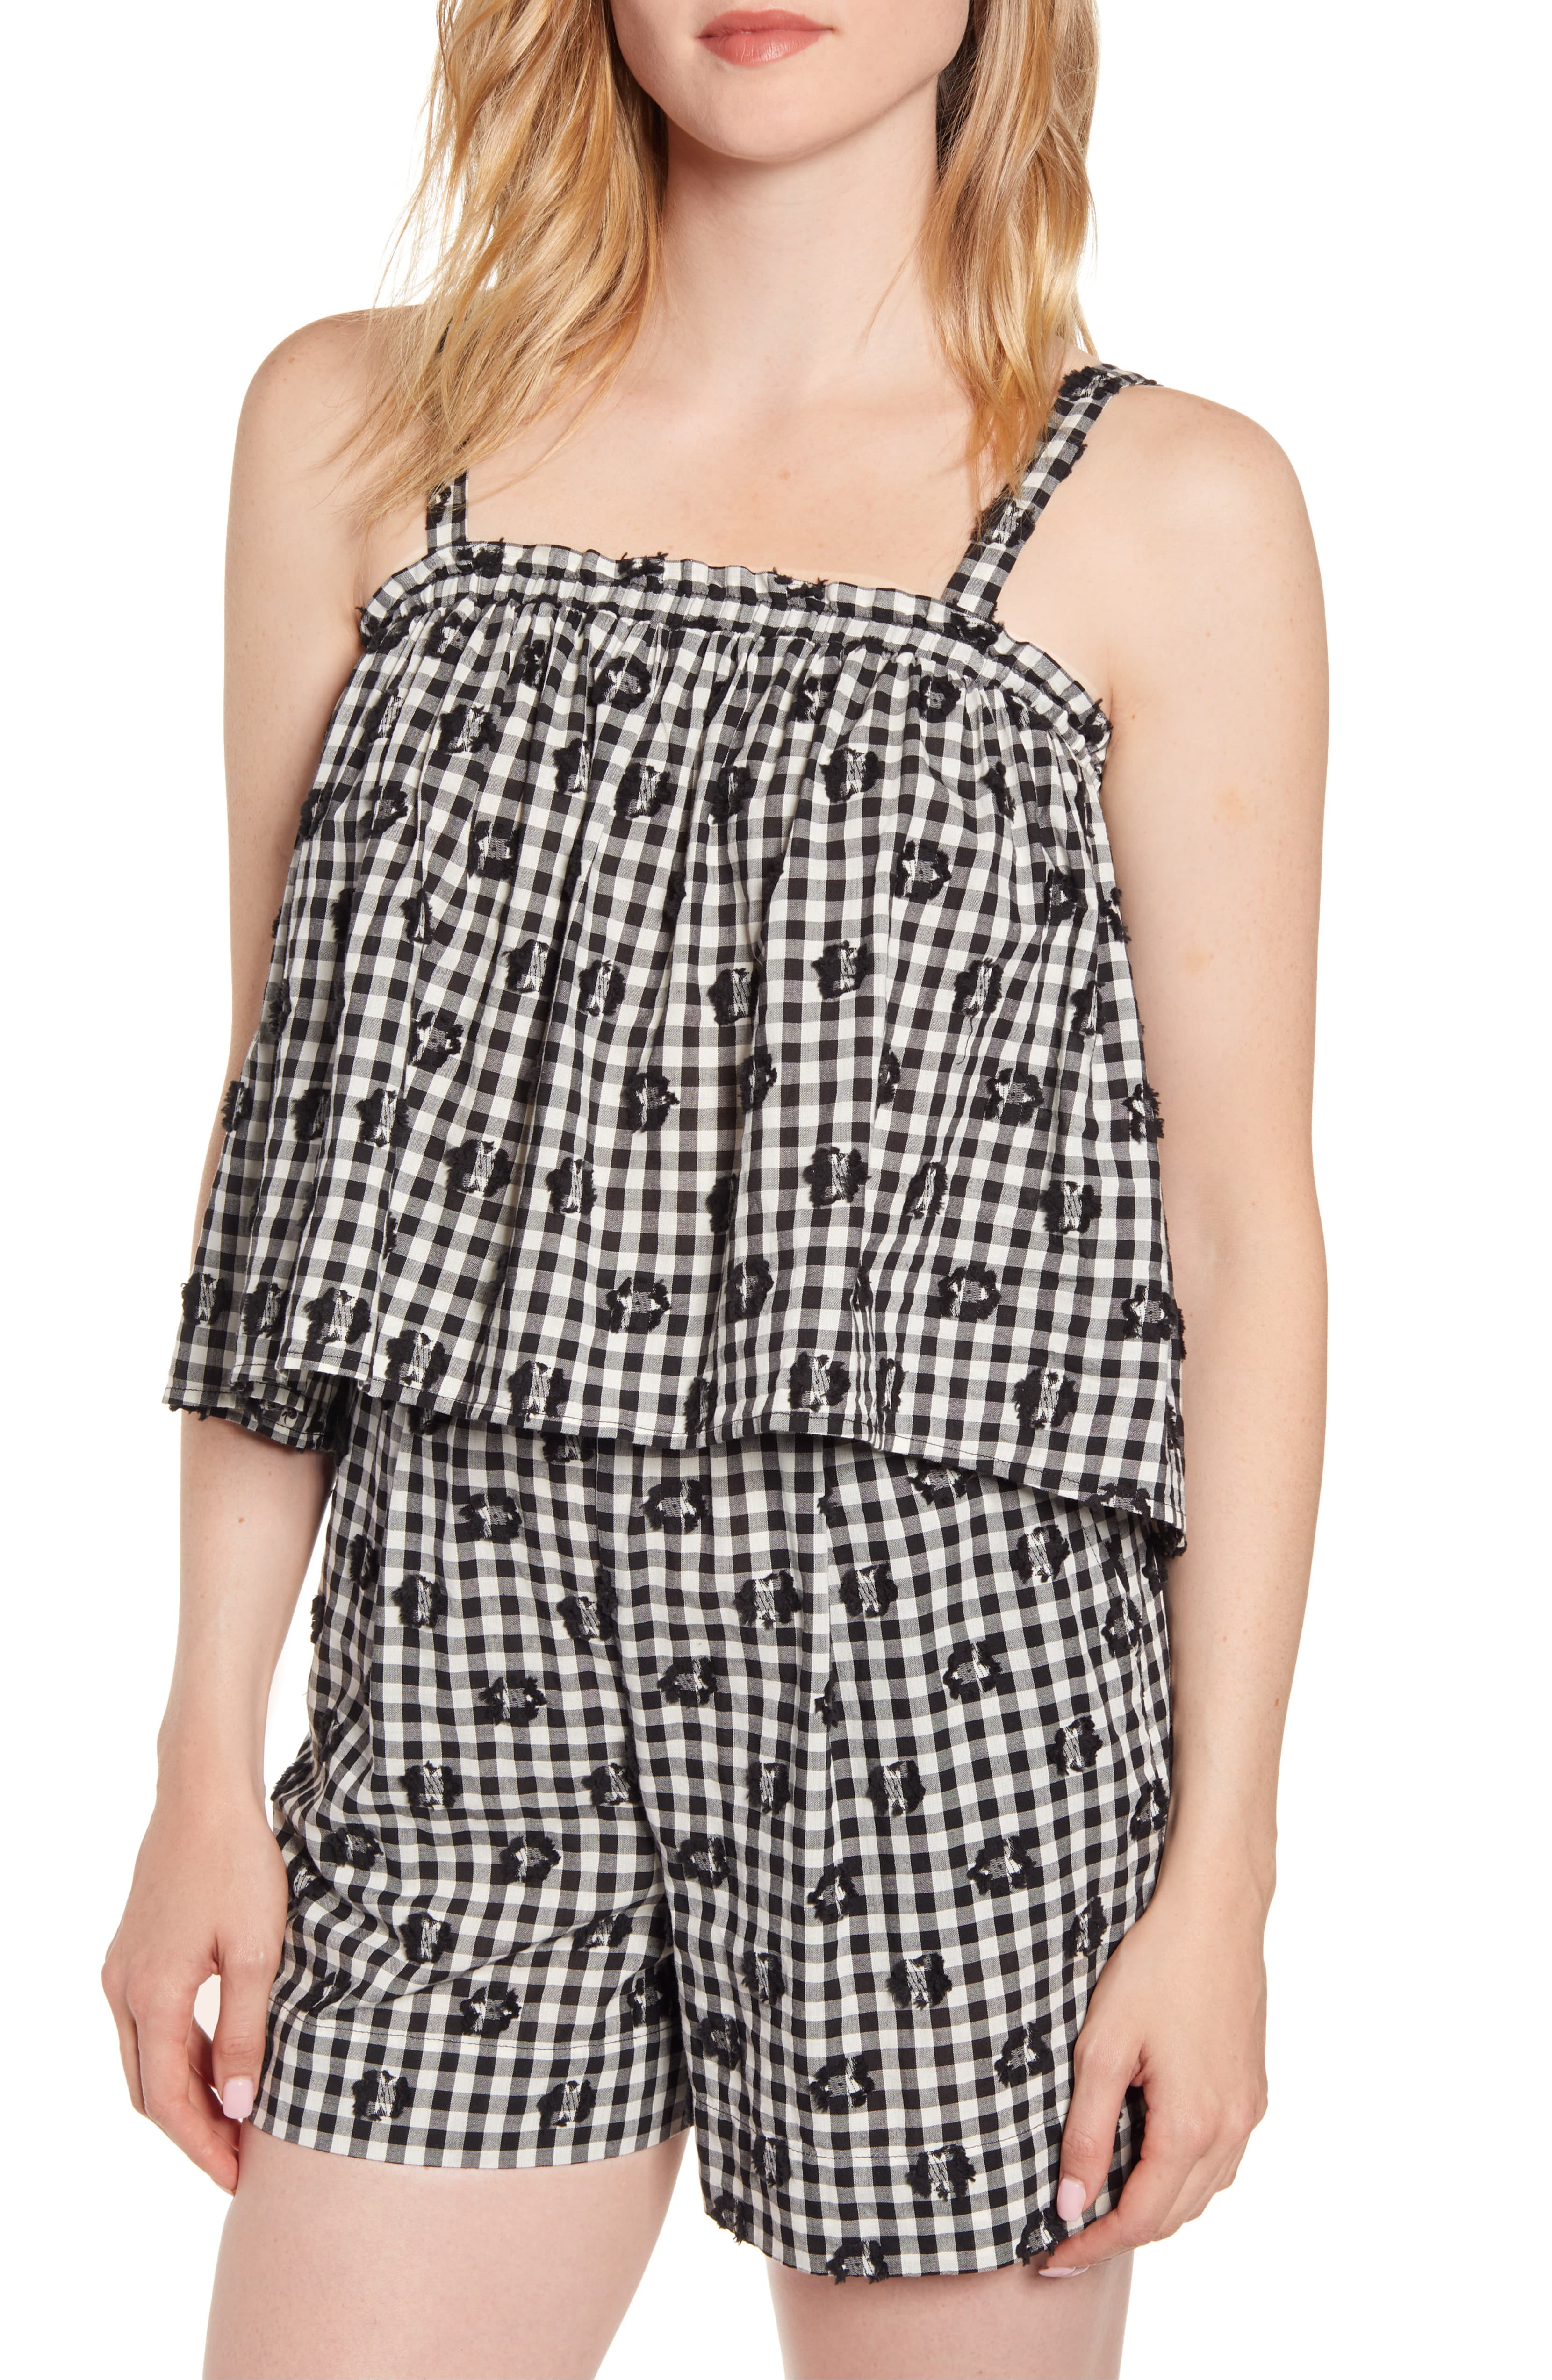 Gingham Camiole and Gingham Shorts